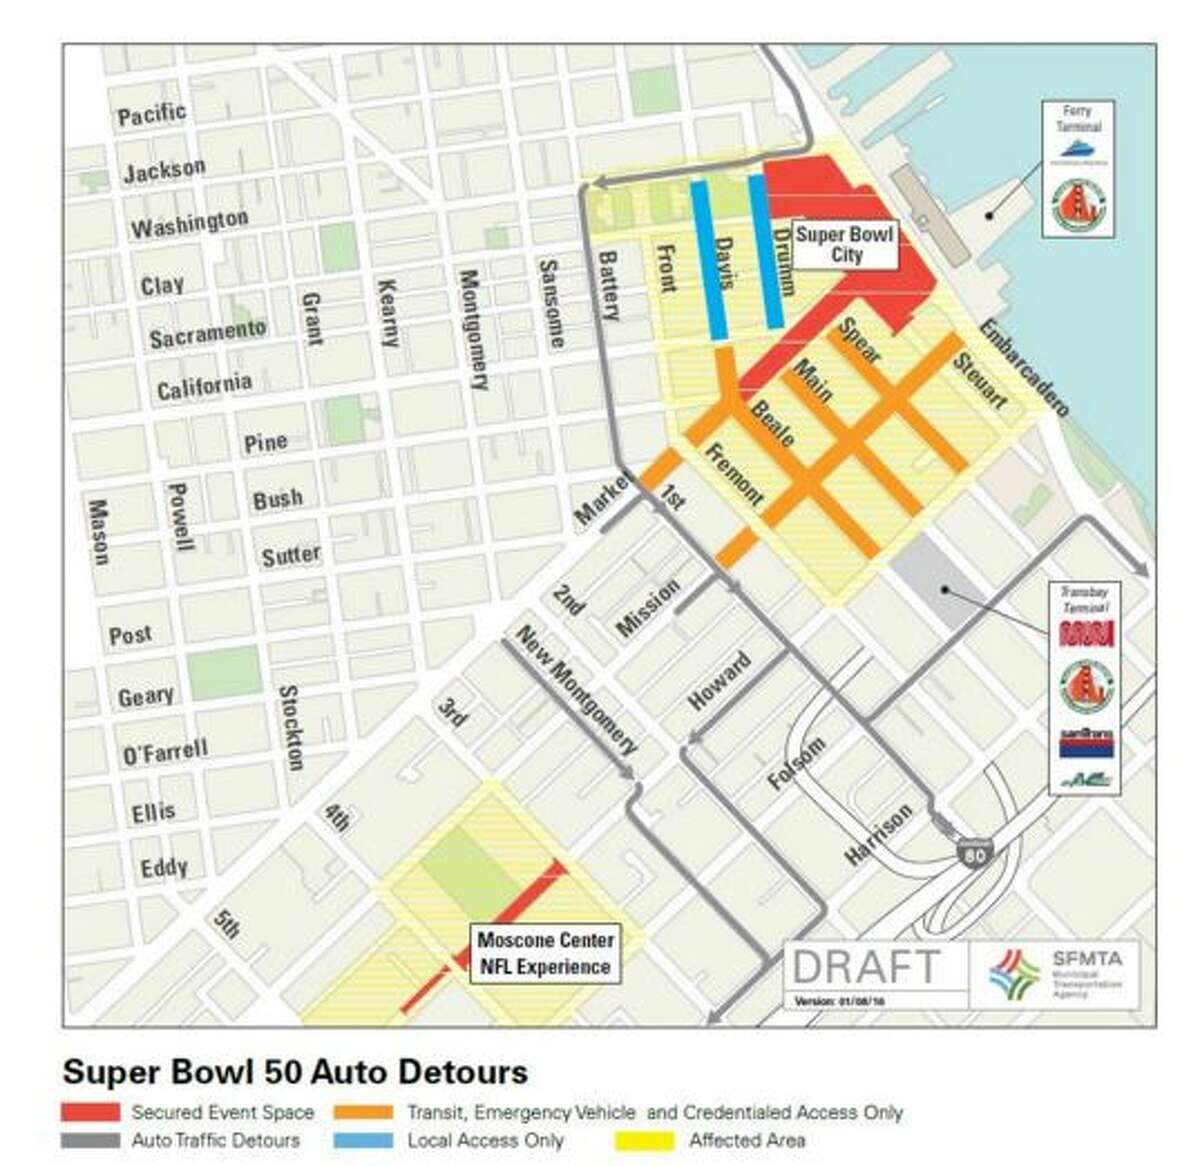 The Closures: Here are the planned detours and street closures for some of the most heavily used streets in San Francisco.